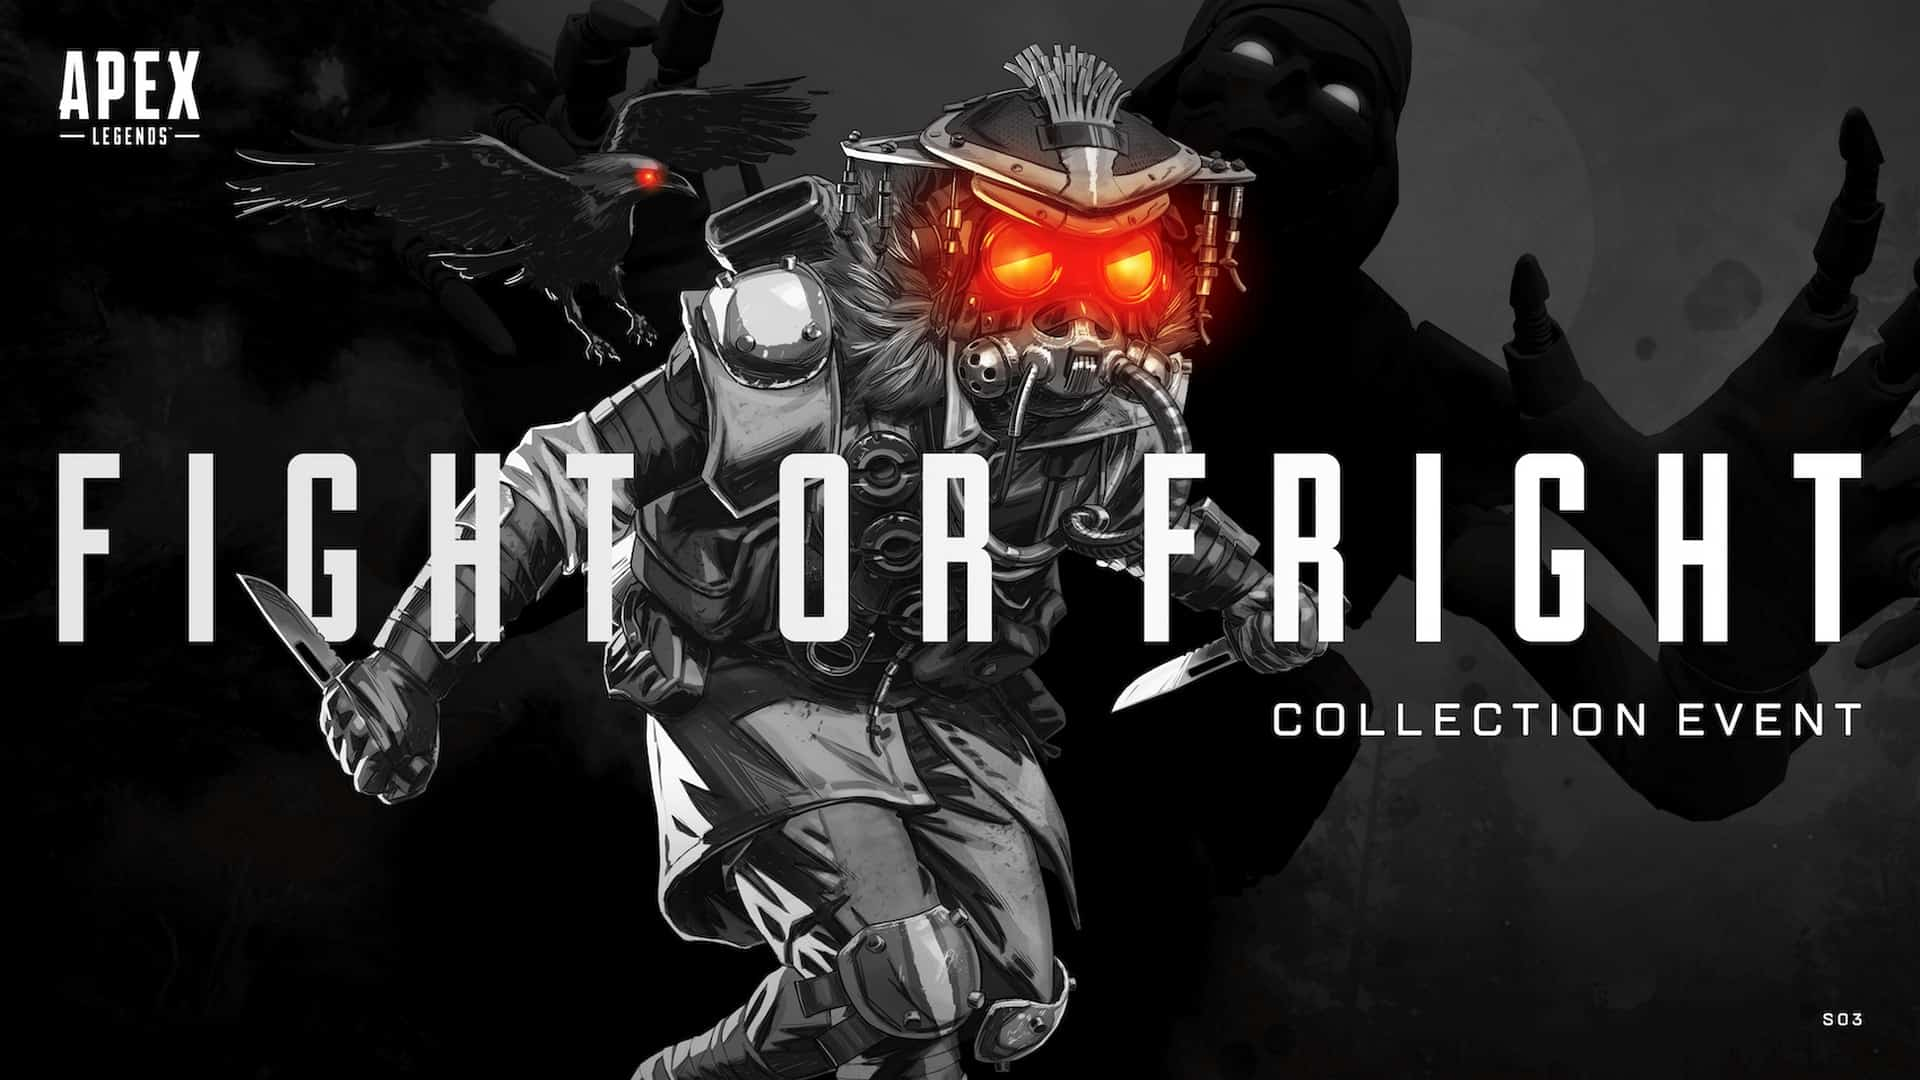 Apex Legends' Fight or Fright Halloween Collection LTE to Kick-Off October 15